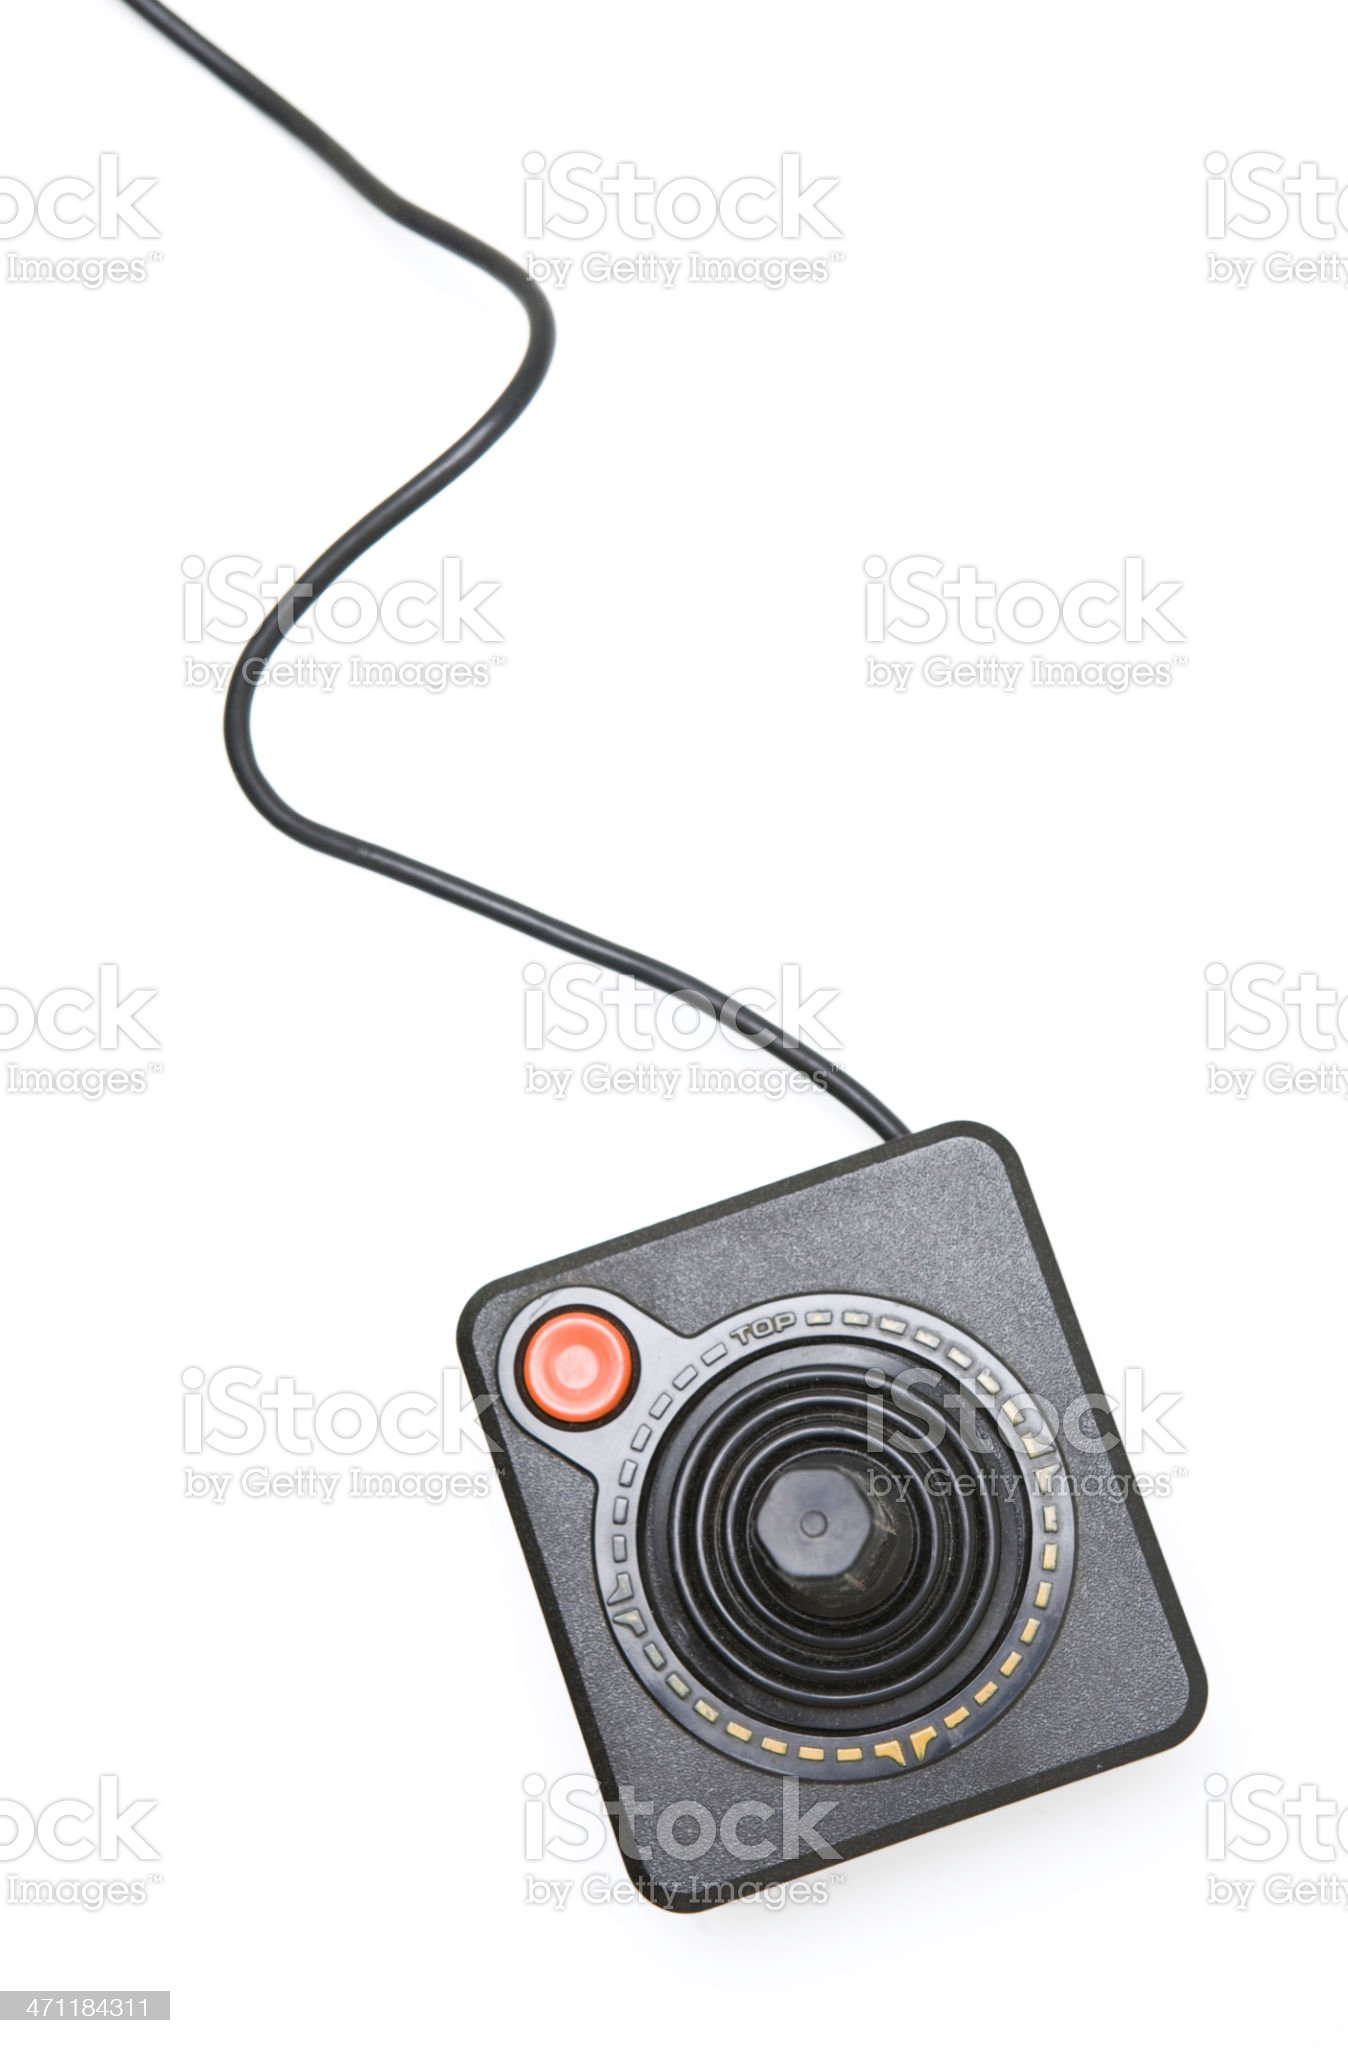 Vintage Video Game Joystick with Copy Space royalty-free stock photo